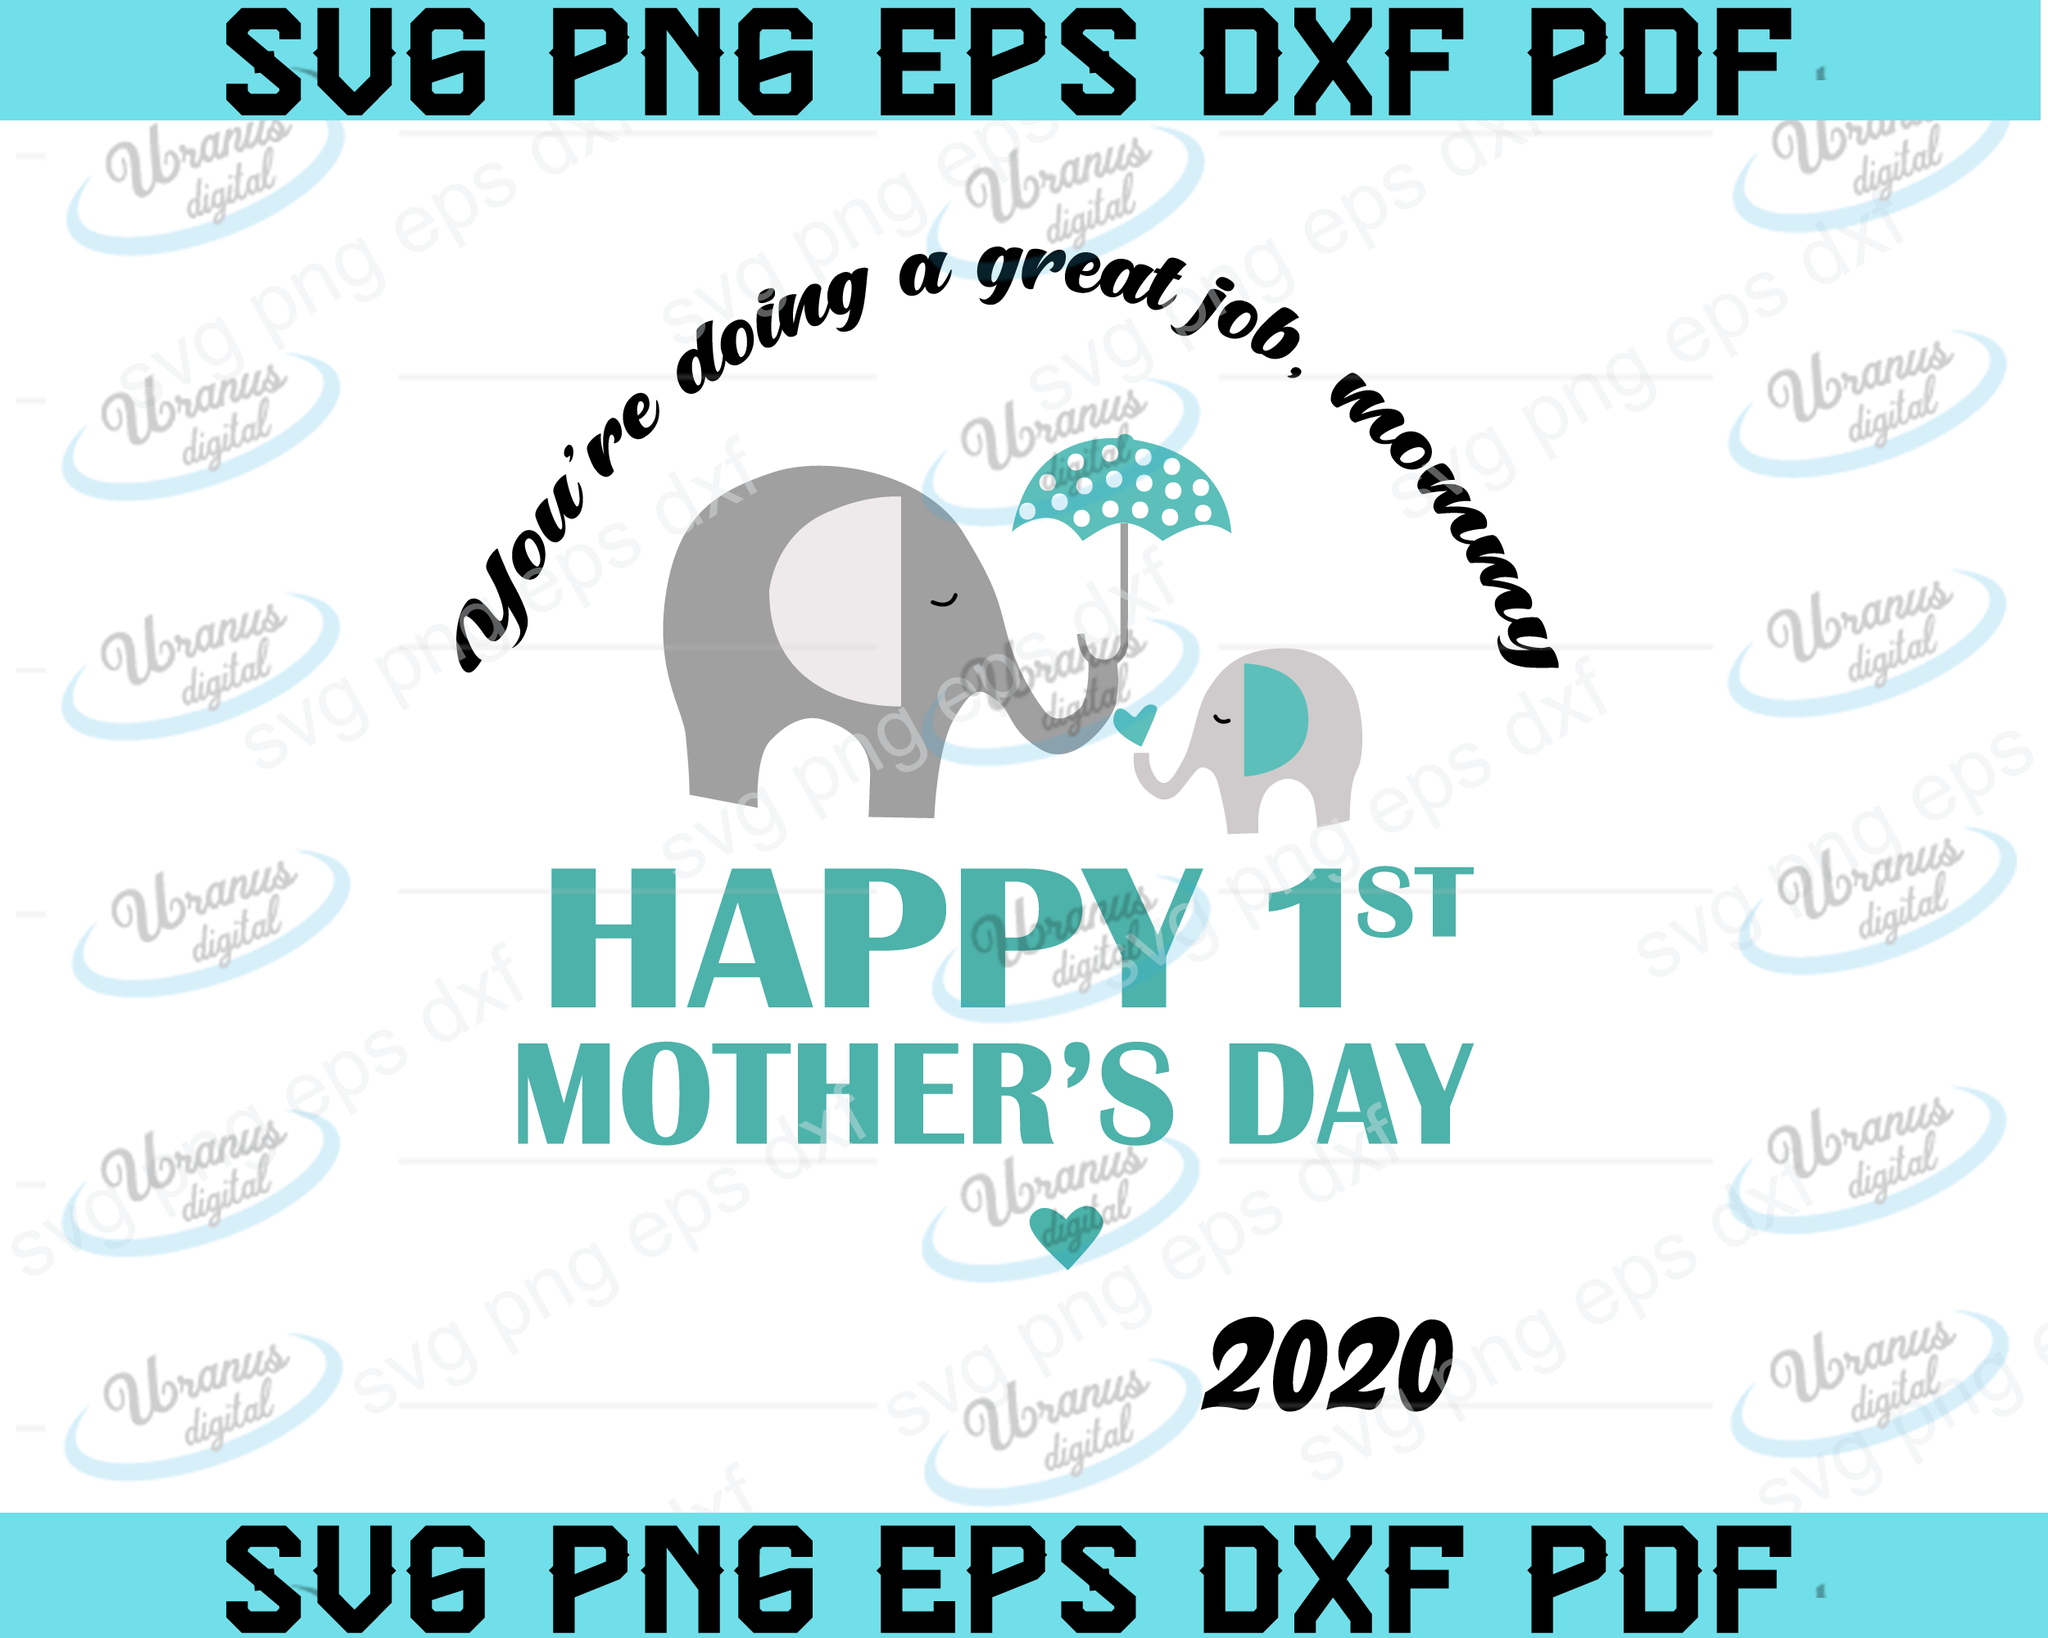 Free Happy first mothers day card by megan claire. You Re Doing A Great Job Mommy Happy 1st Mother S Day Svg Digital Do Uranusdigital SVG, PNG, EPS, DXF File